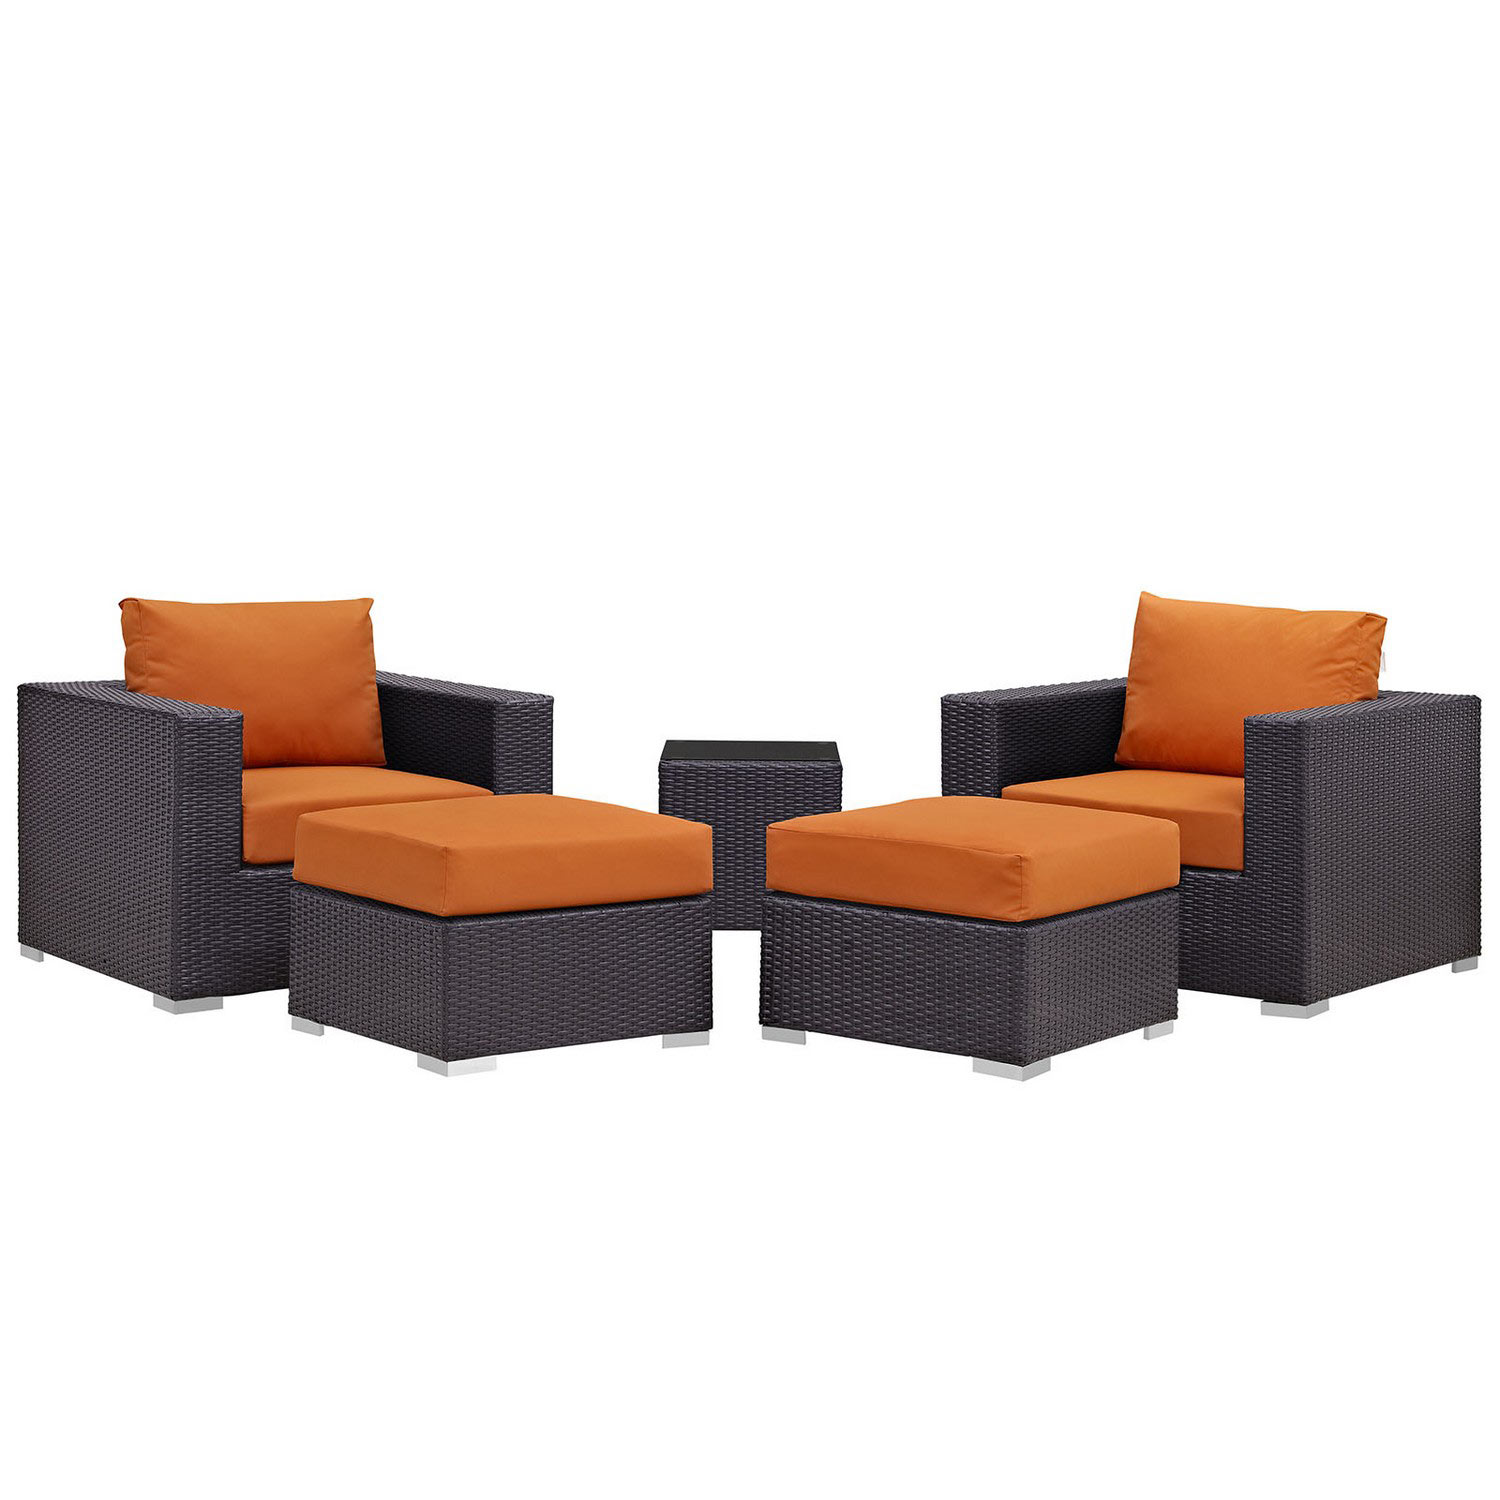 Modway Convene 5 Piece Outdoor Patio Sectional Set - Espresso Orange